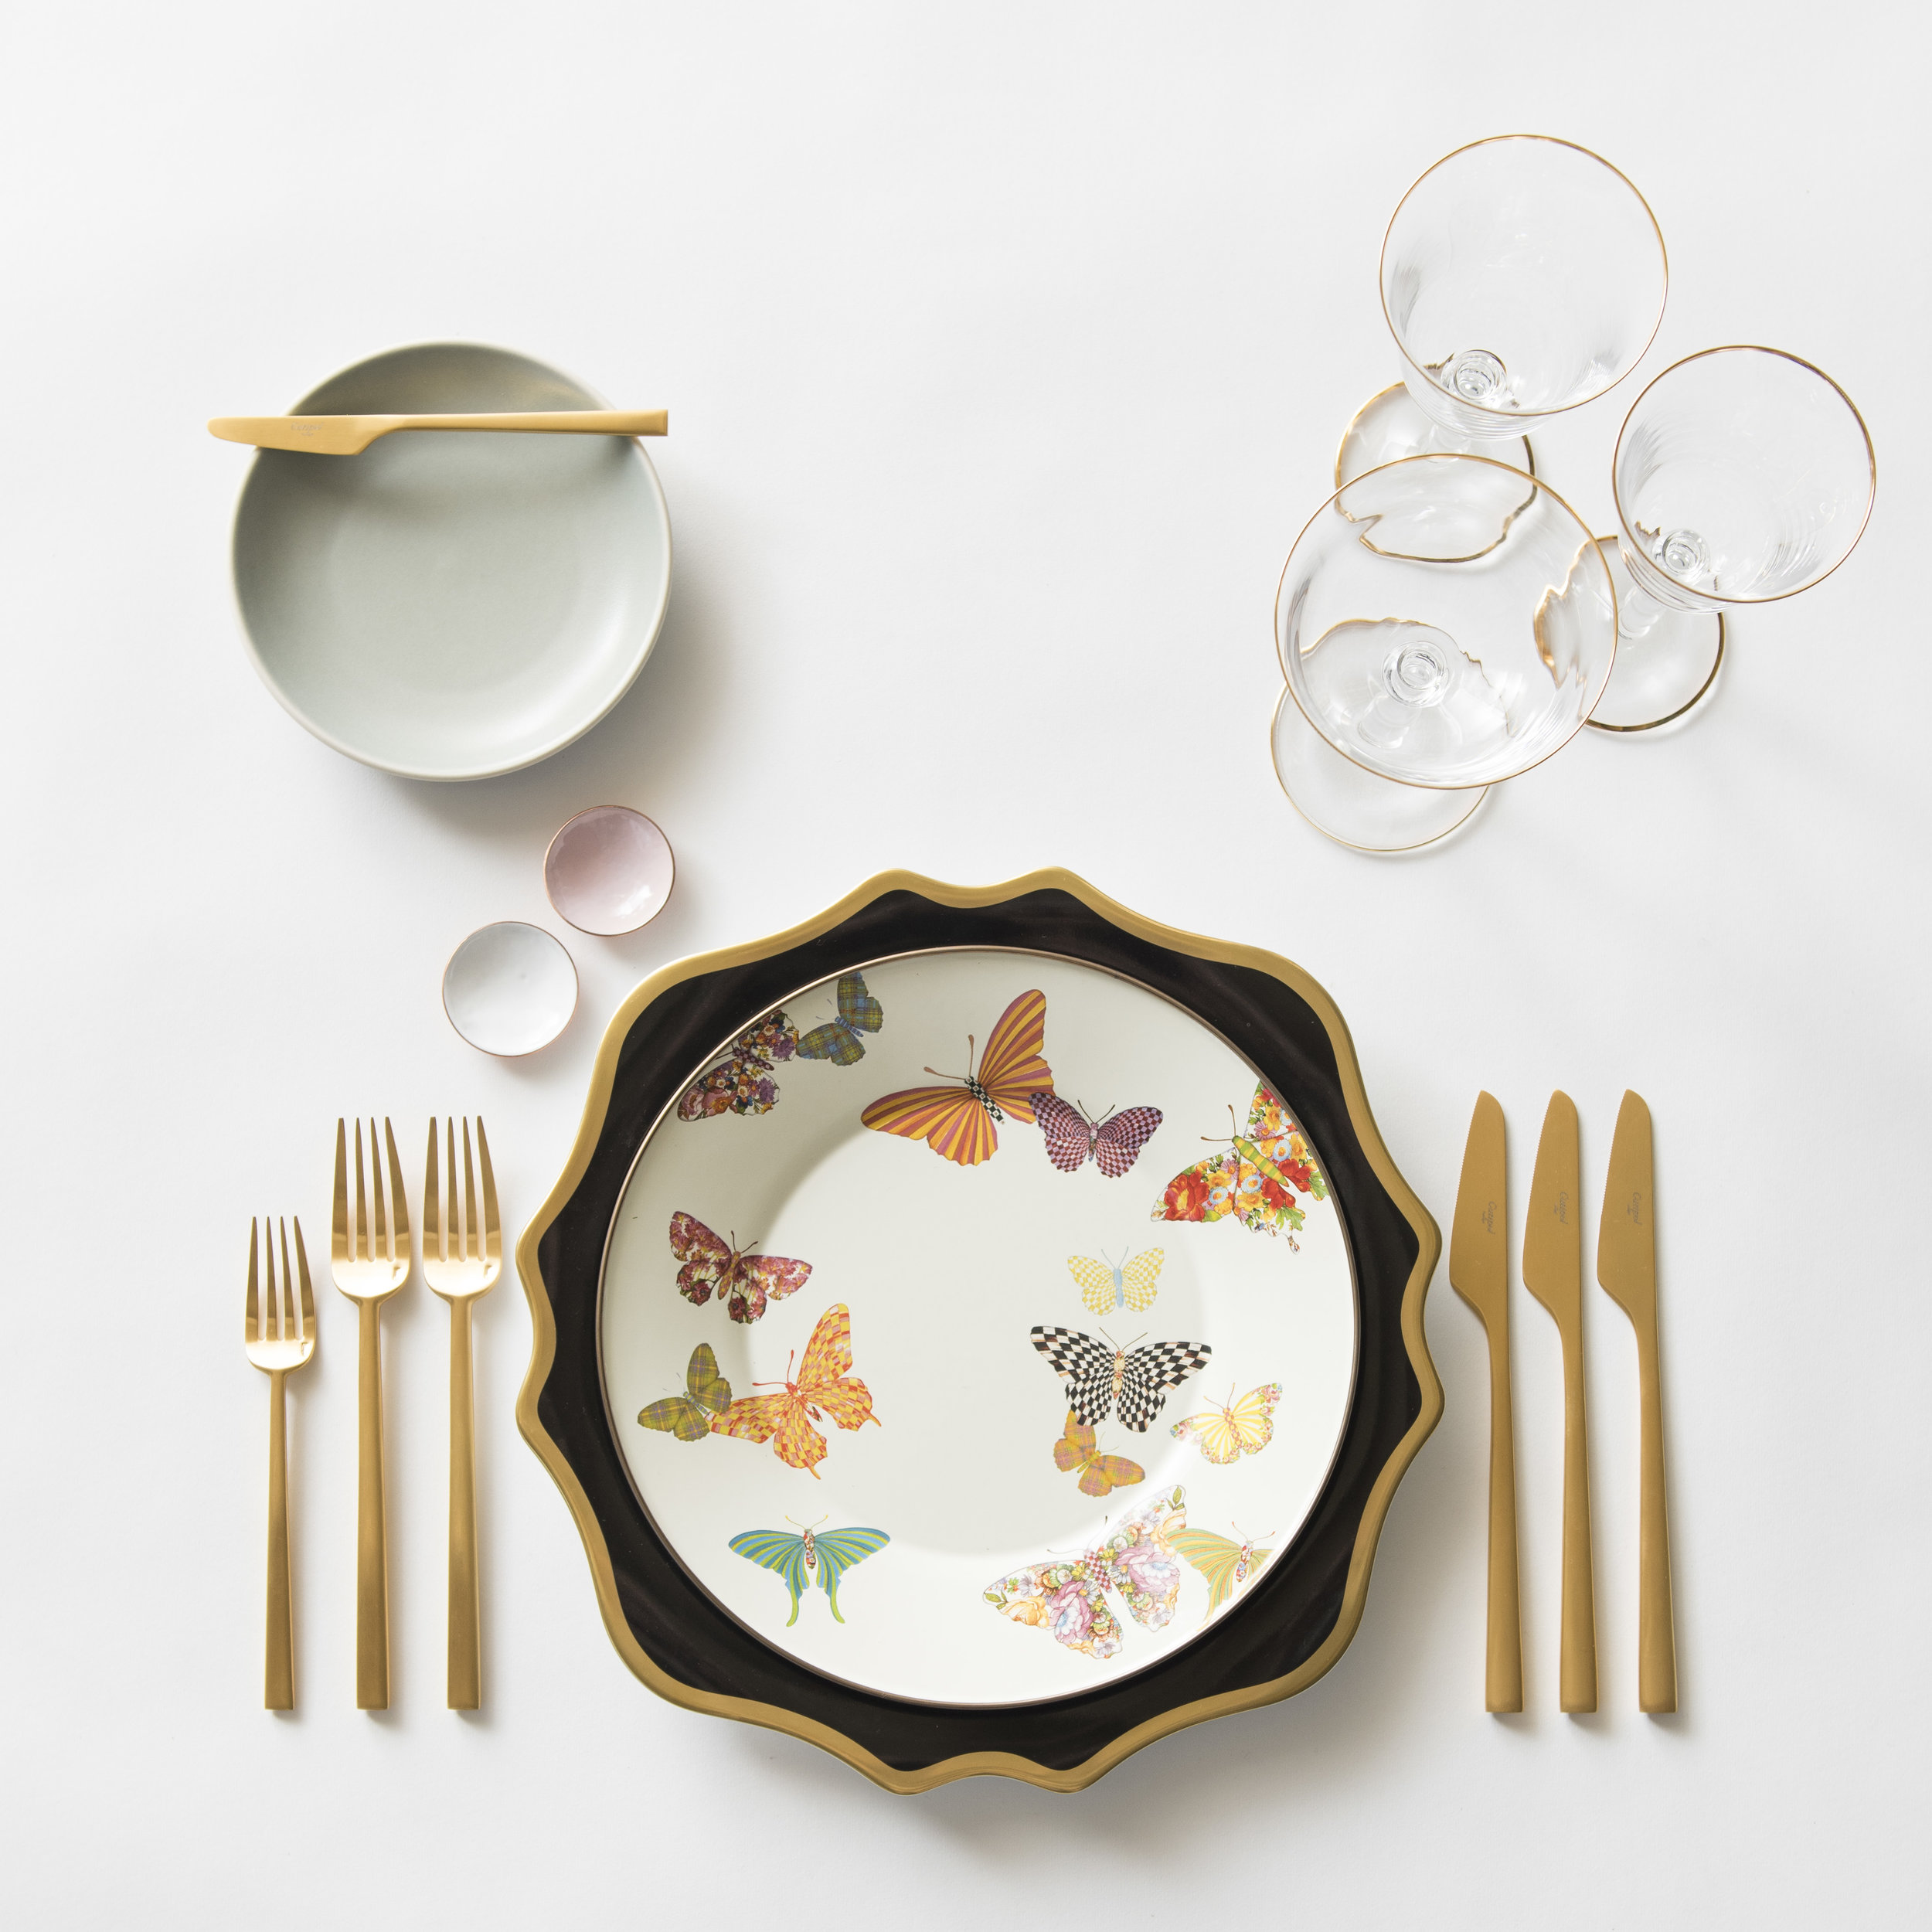 RENT: Anna Weatherley Chargers in Black/Gold + MacKenzie-Childs Butterfly Garden Collection + Heath Ceramics in Mist + Rondo Flatware in Brushed 24k Gold + Chloe 24k Gold Rimmed Stemware + White/Pink Enamel Salt Cellars   SHOP: Rondo Flatware in Brushed 24k Gold + Chloe 24k Gold Rimmed Stemware